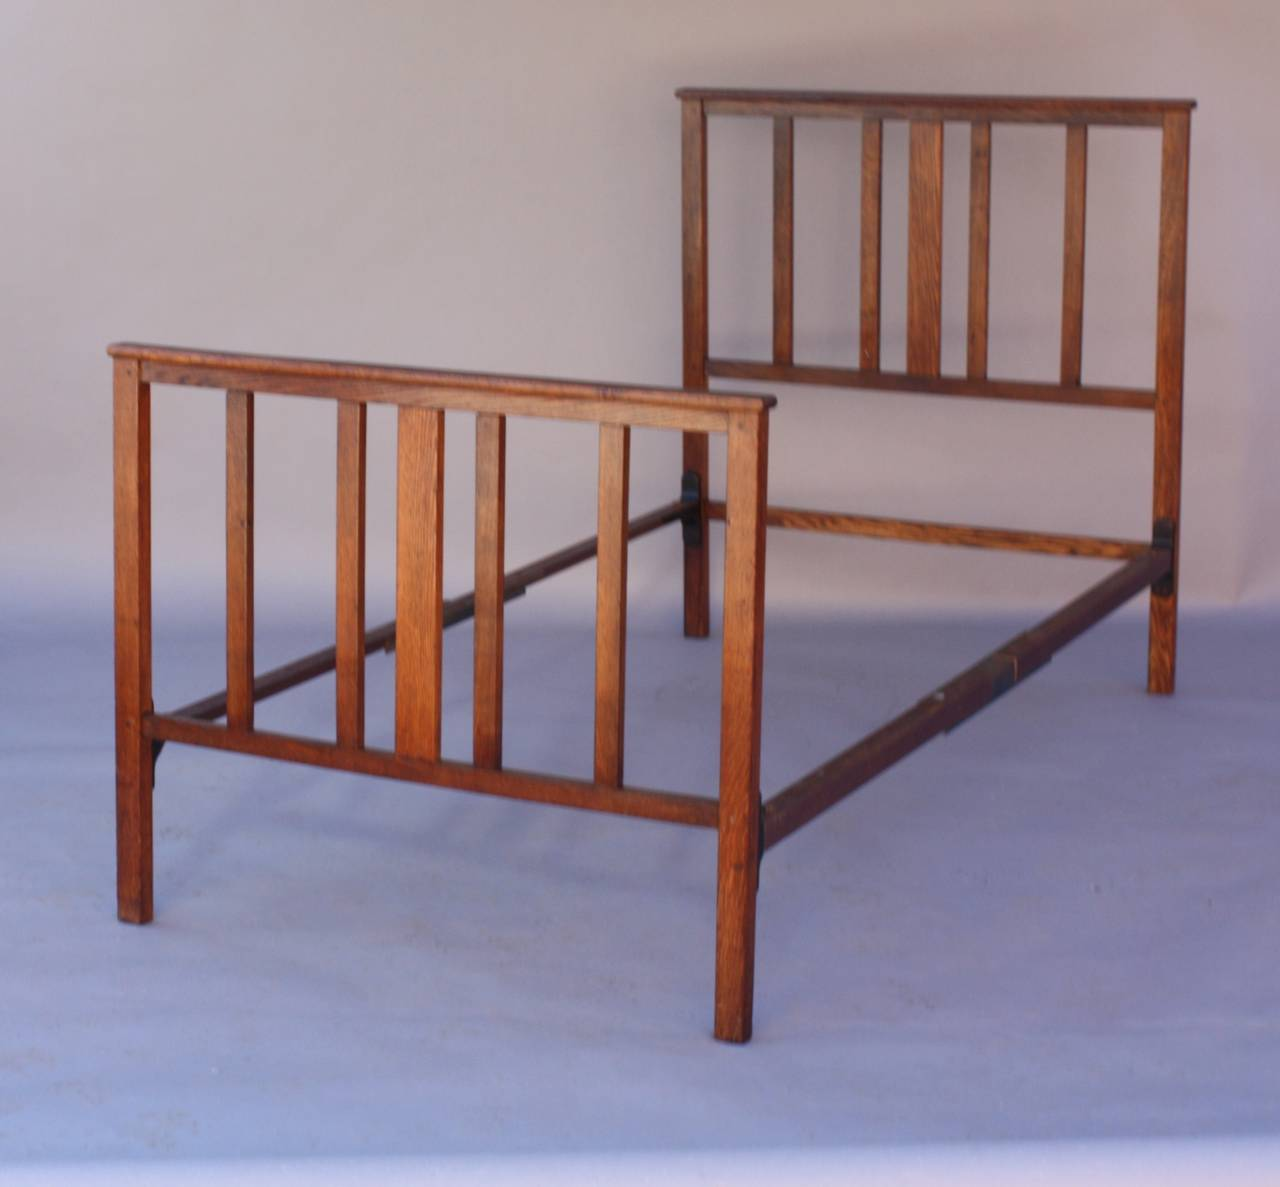 Circa 1910 Antique Arts And Crafts Bed For Sale At 1stdibs